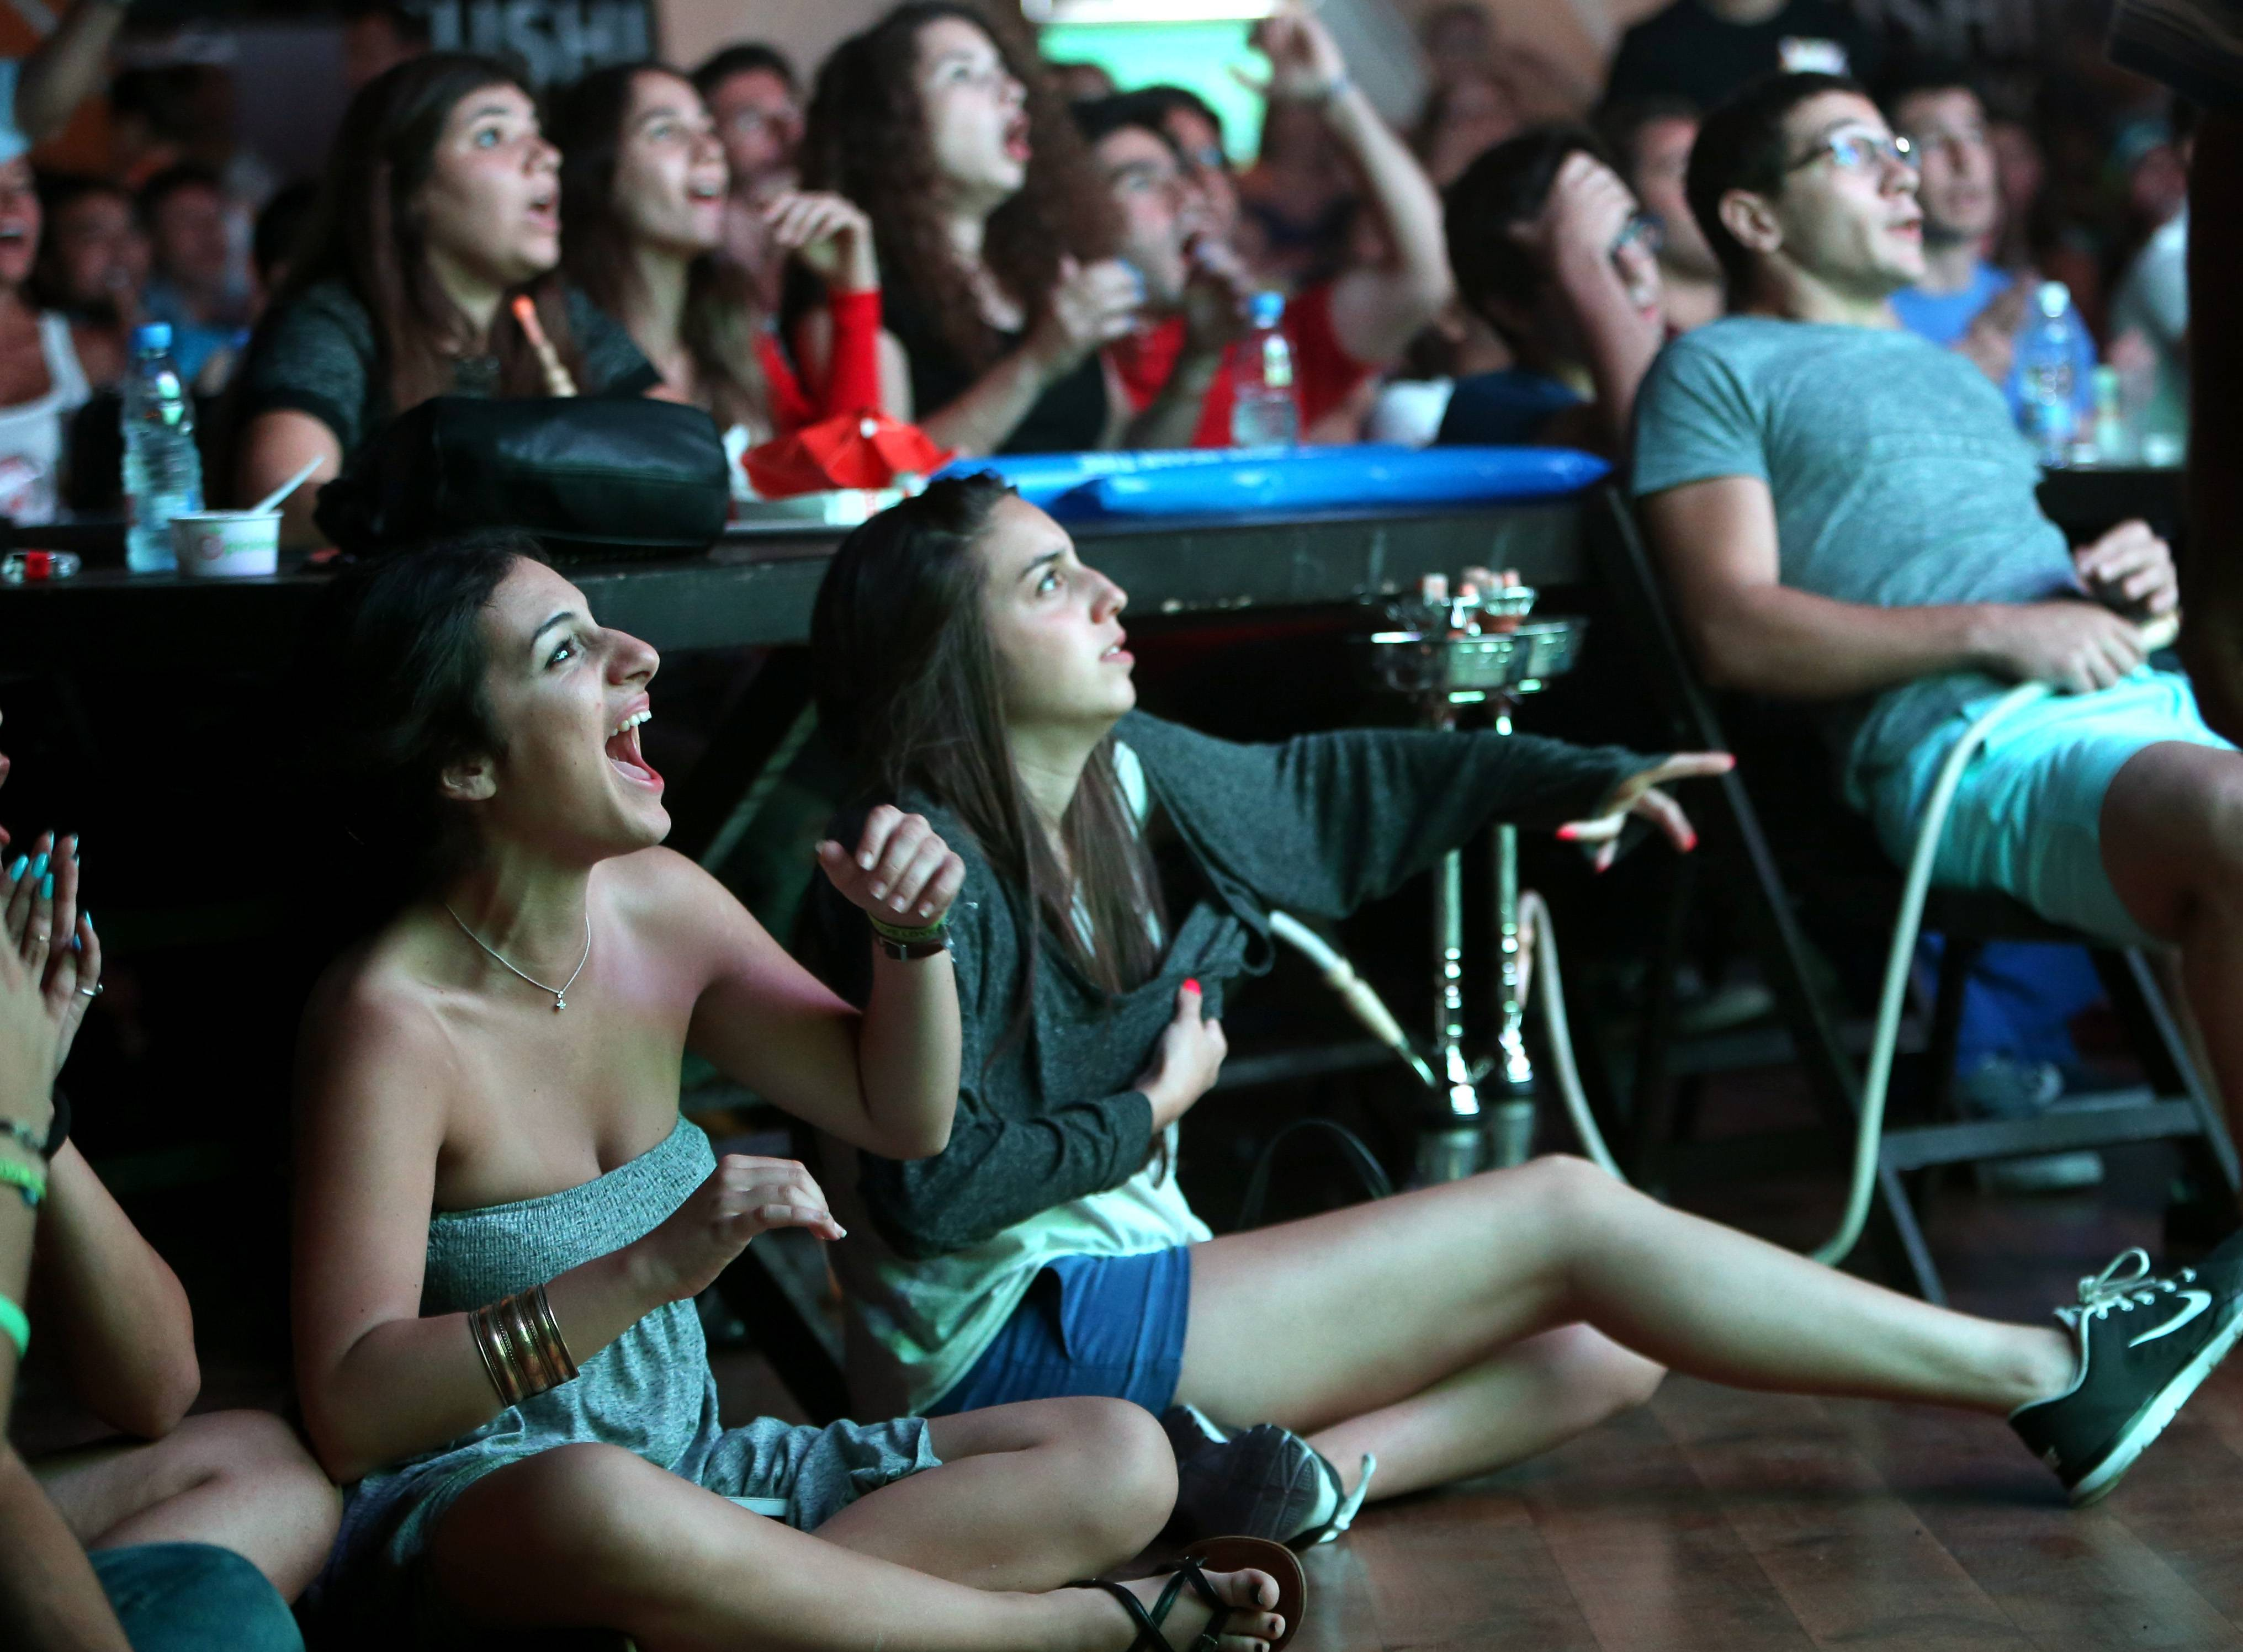 Lebanese soccer fans cheer during the first soccer match of the World Cup between Brazil and Croatia, at a fan park in downtown Beirut, Lebanon.